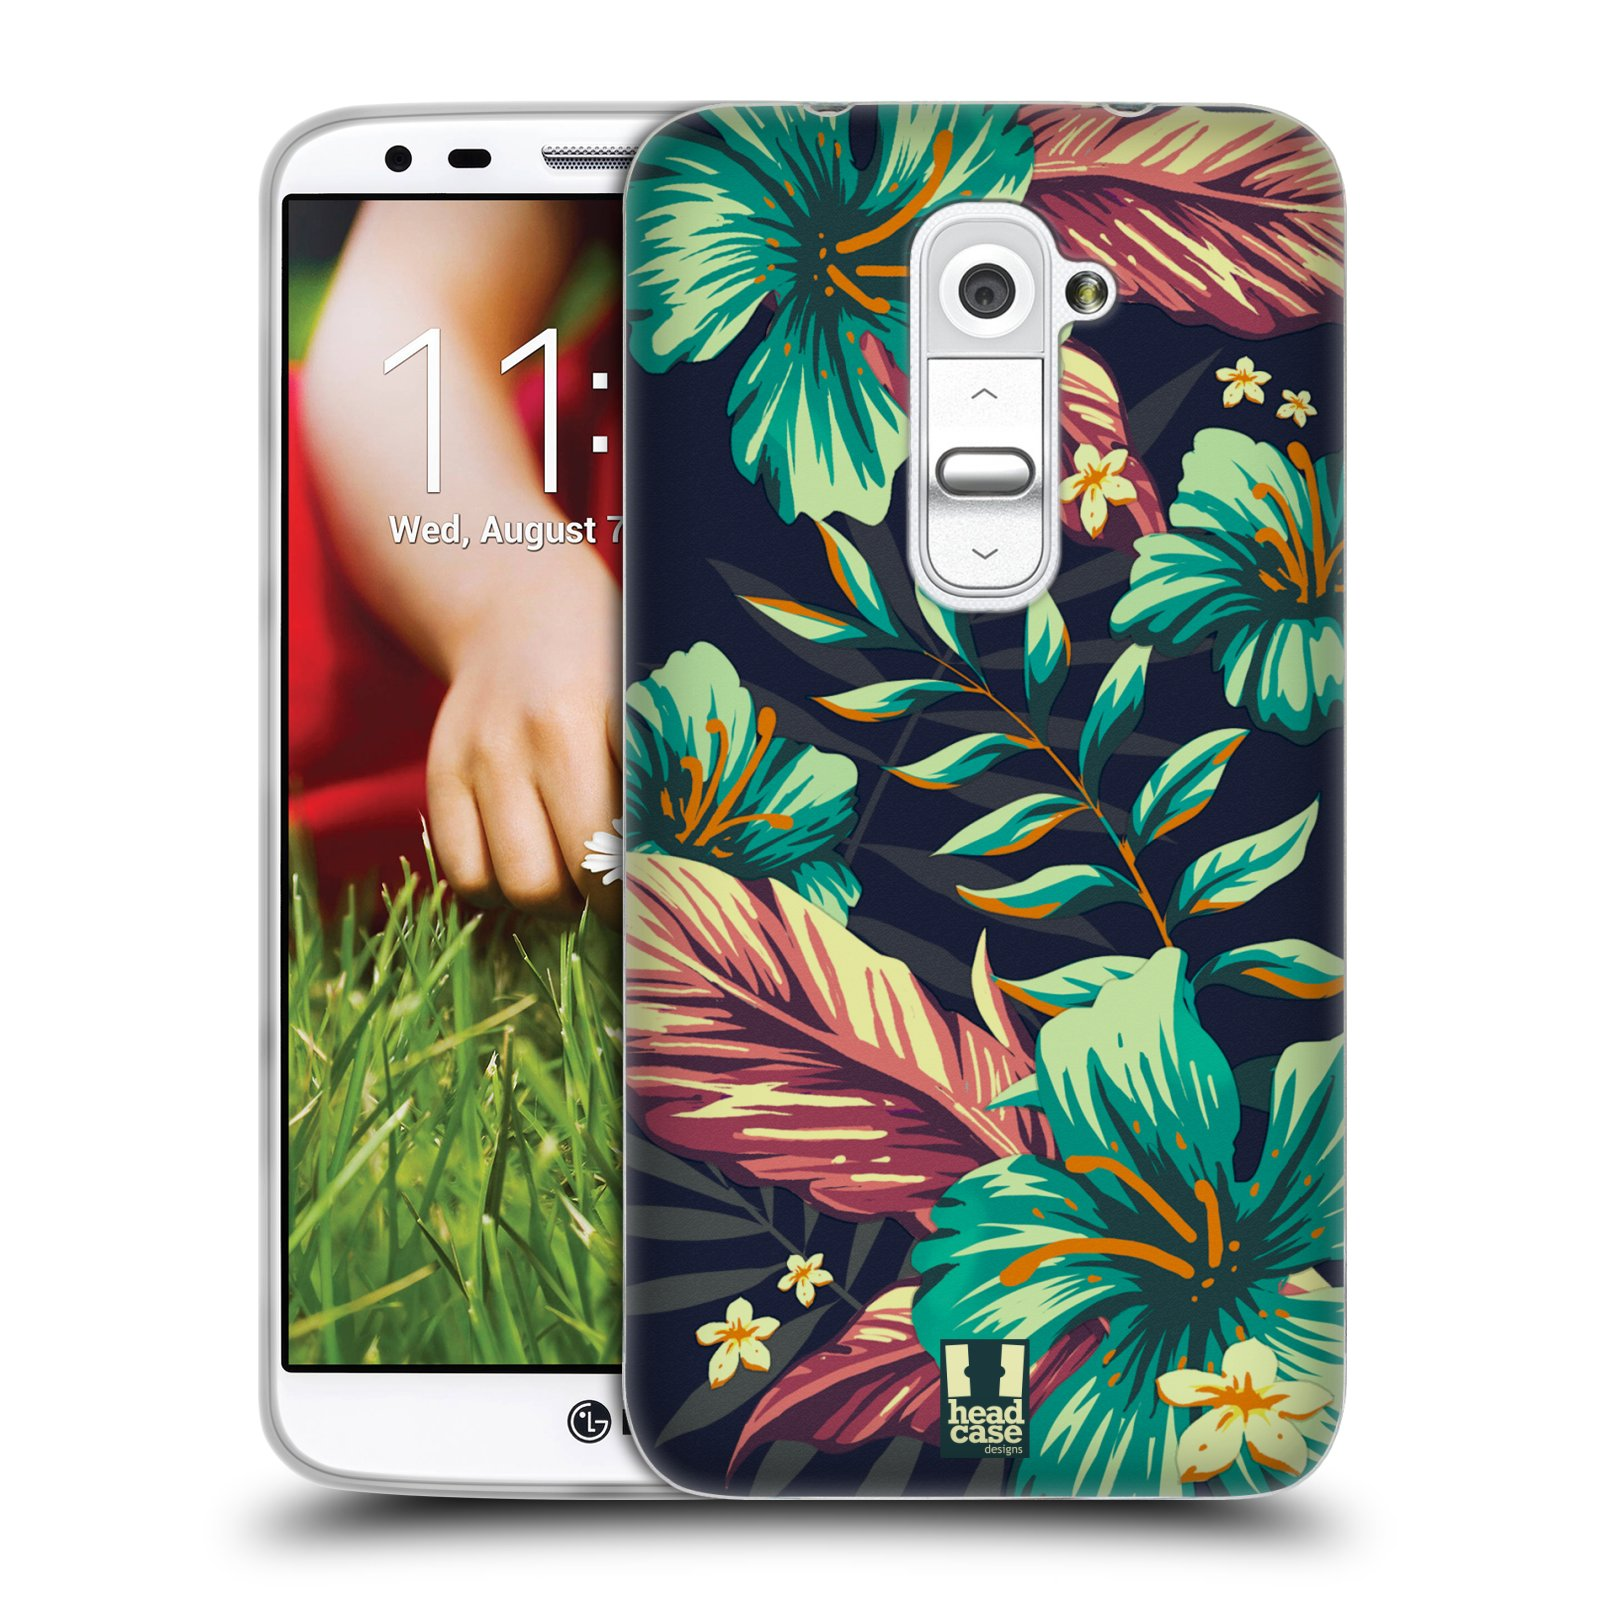 HEAD CASE TROPICAL PRINTS SILICONE GEL CASE FOR LG G2 D802